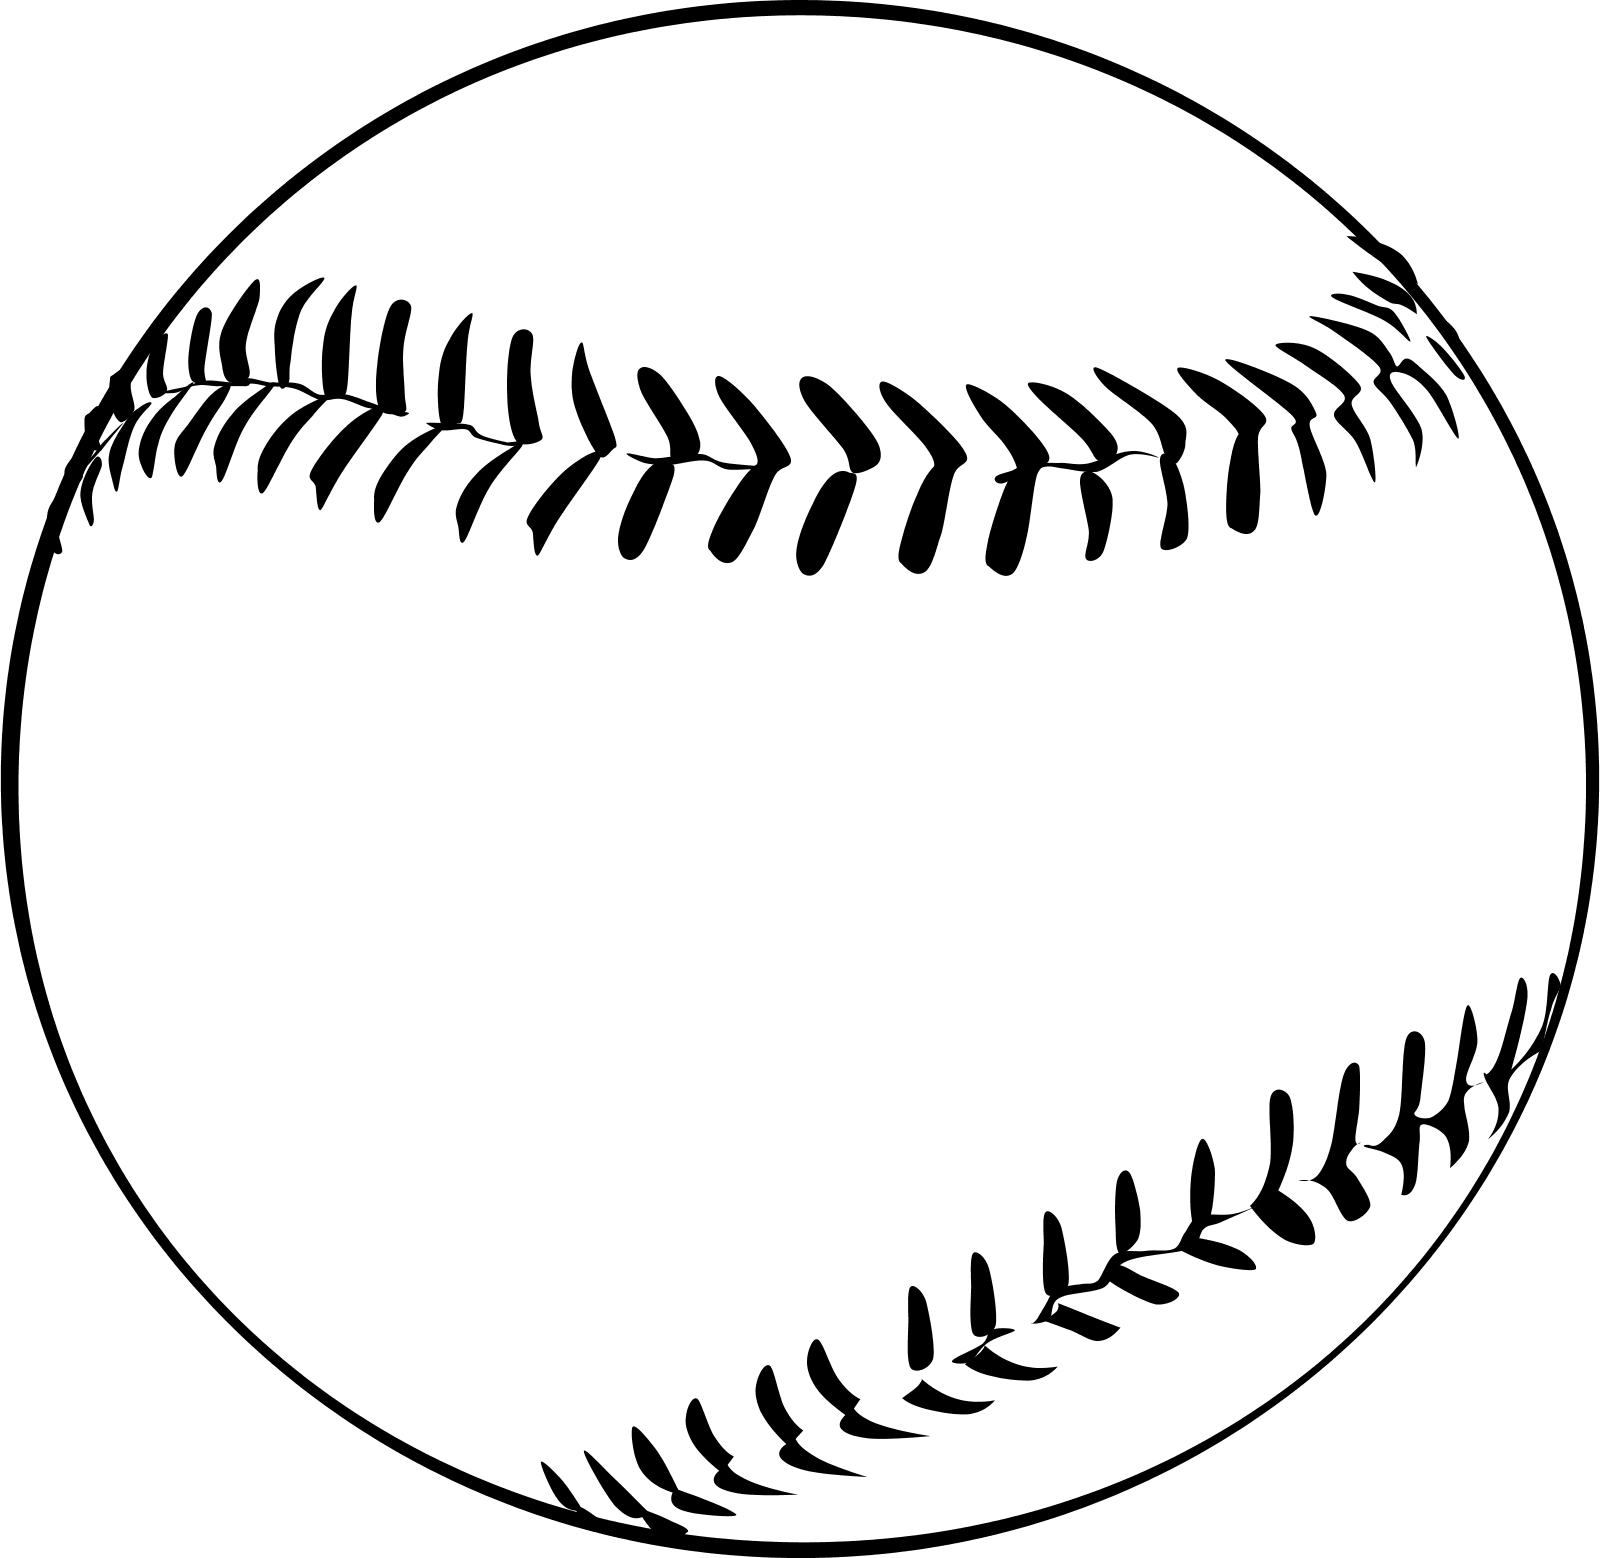 Sports baseball clipart clipart free stock 28+ Collection of Baseball Clipart Png | High quality, free cliparts ... clipart free stock